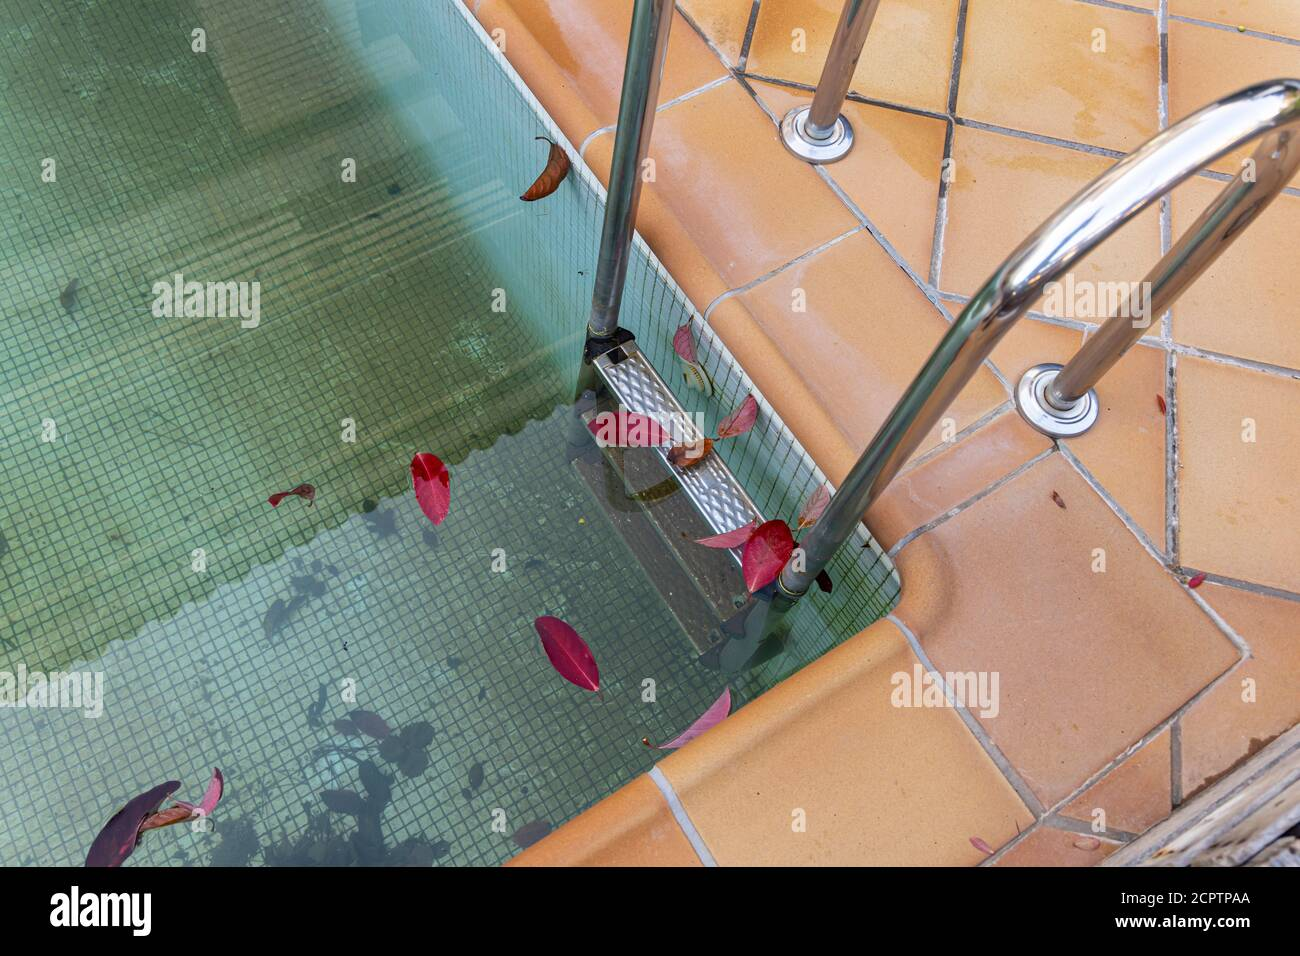 Swimming Pool In Winter High Resolution Stock Photography And Images Alamy